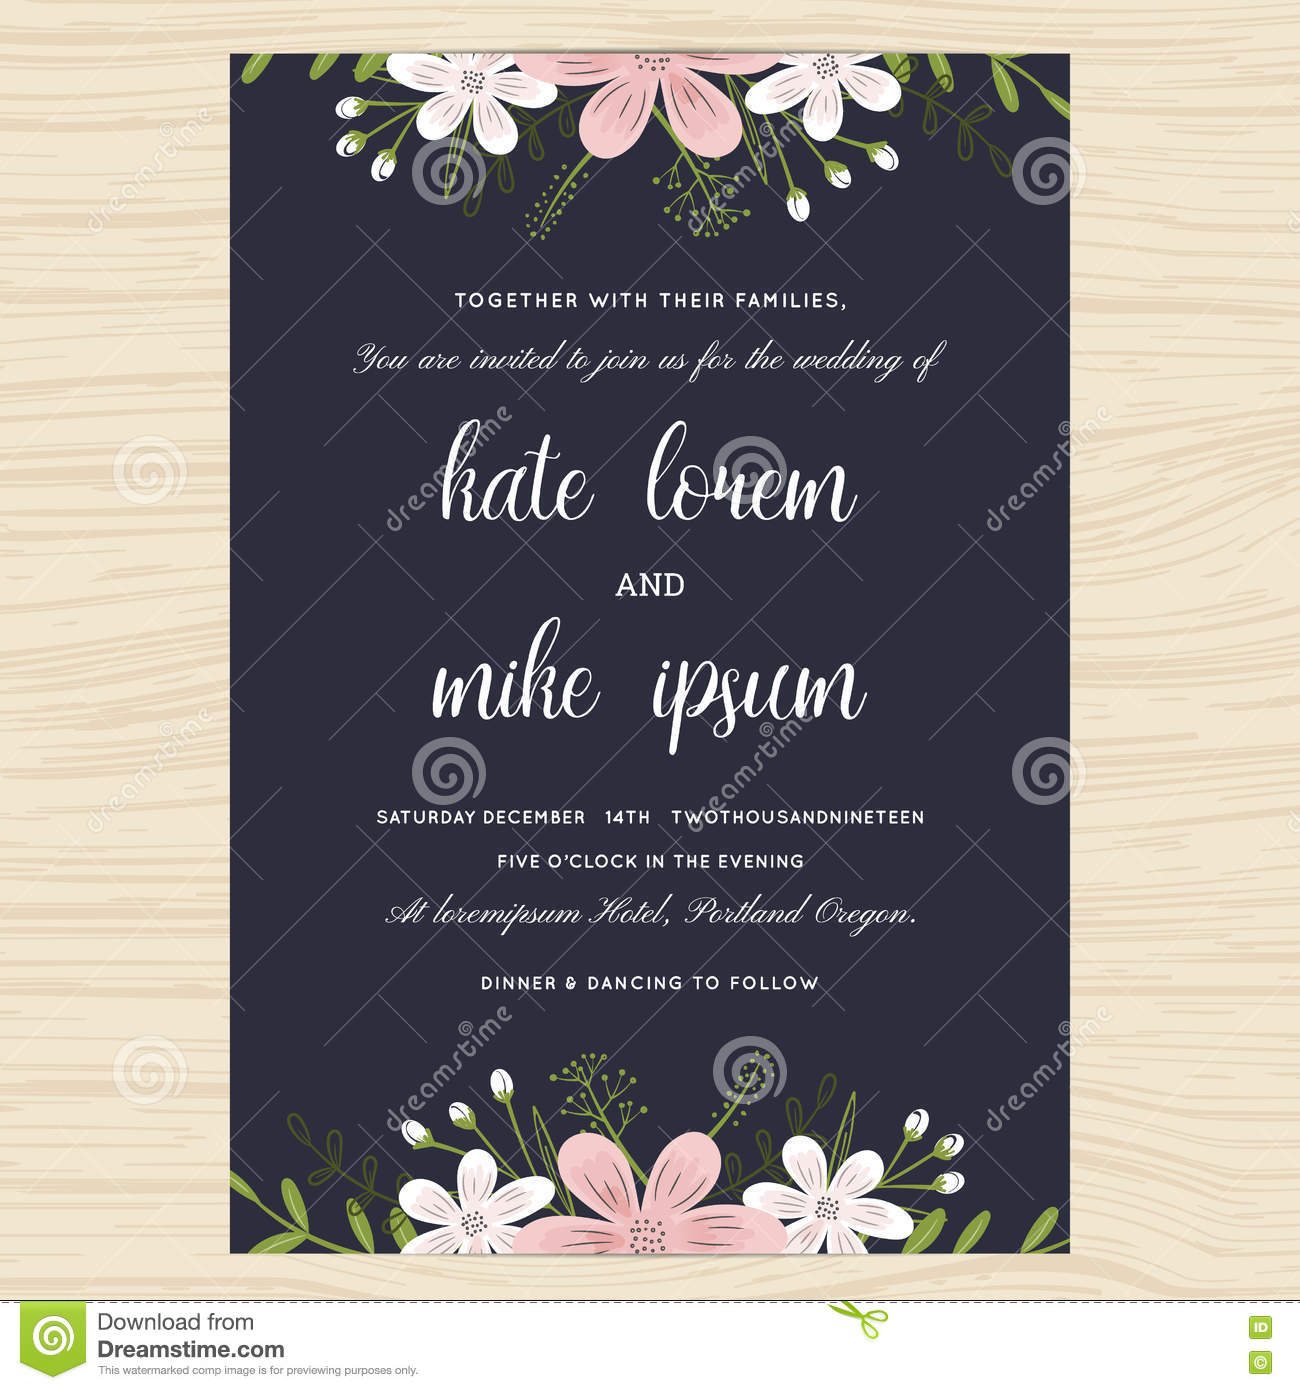 Wedding Invitation Card Template Decorate With Flower Floral Wreath